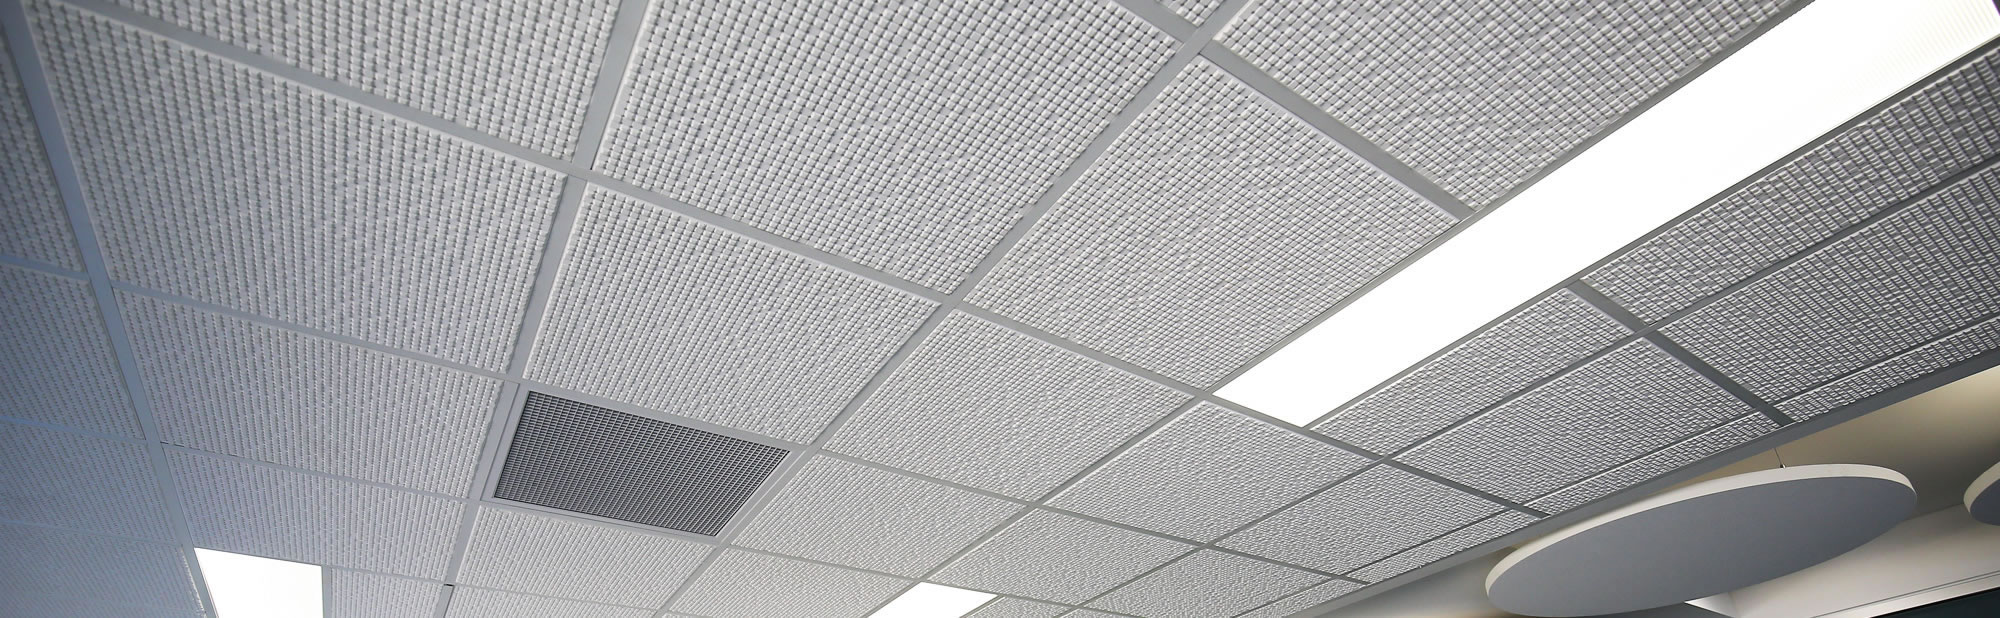 Shadex Acoustic Ceiling Tiles | Australian Plaster Acoustics